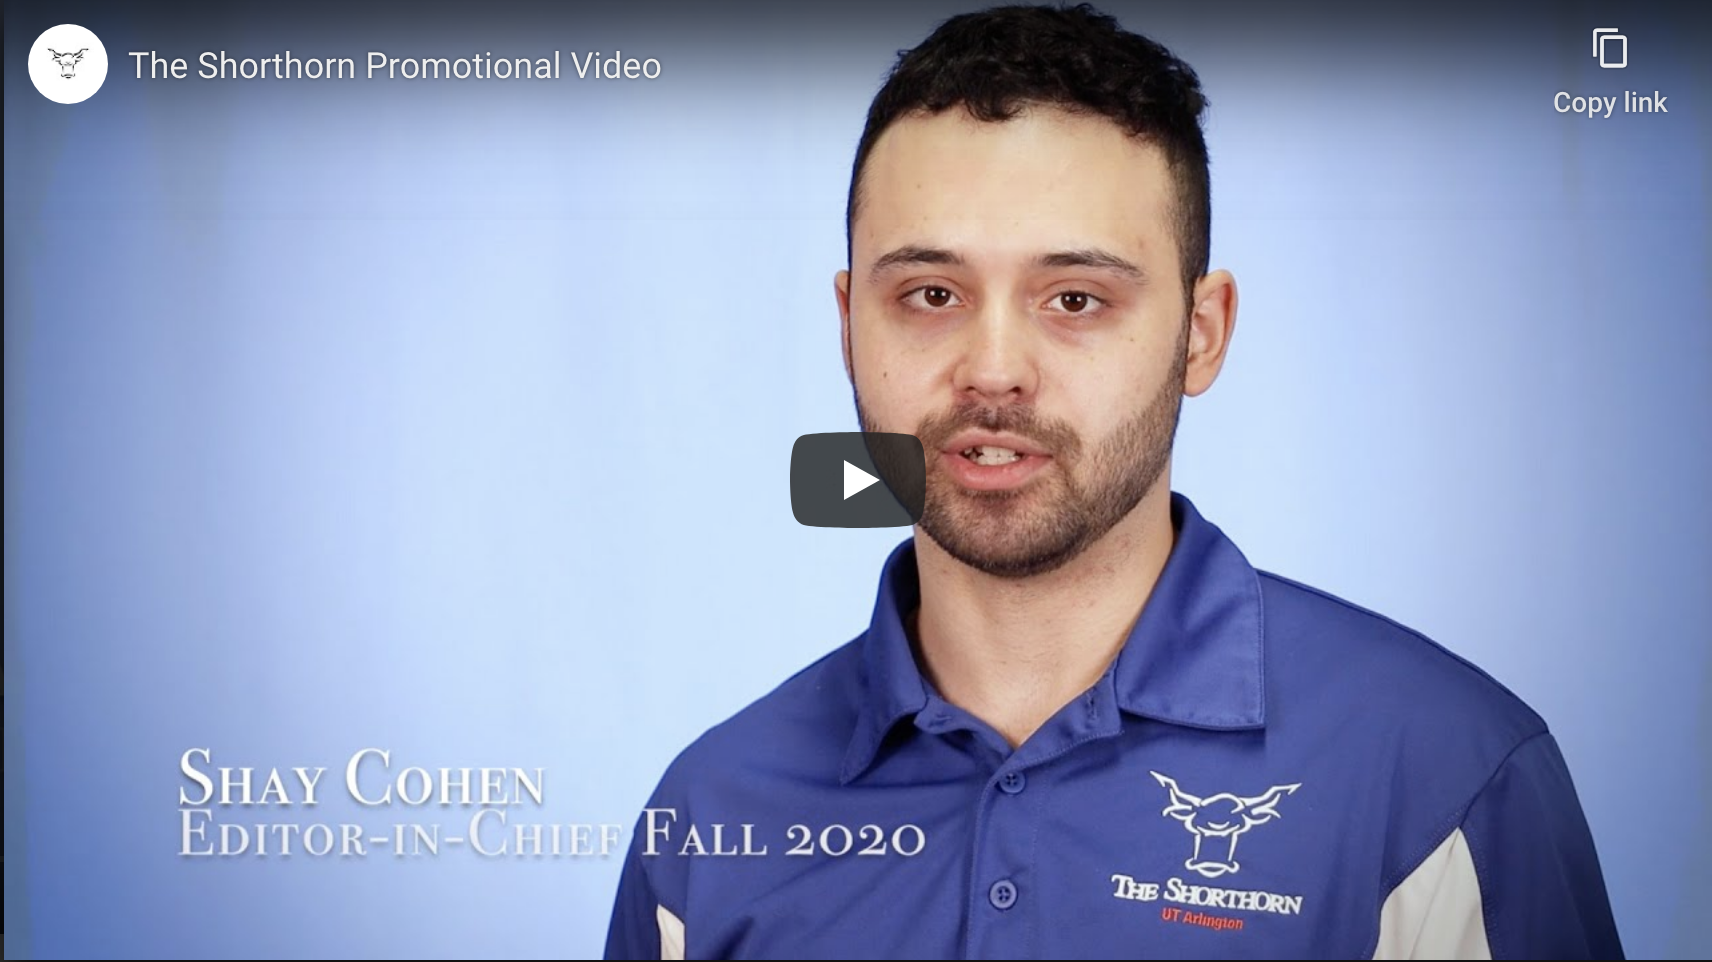 Shorthorn Promo video 2020 with Shay Cohen